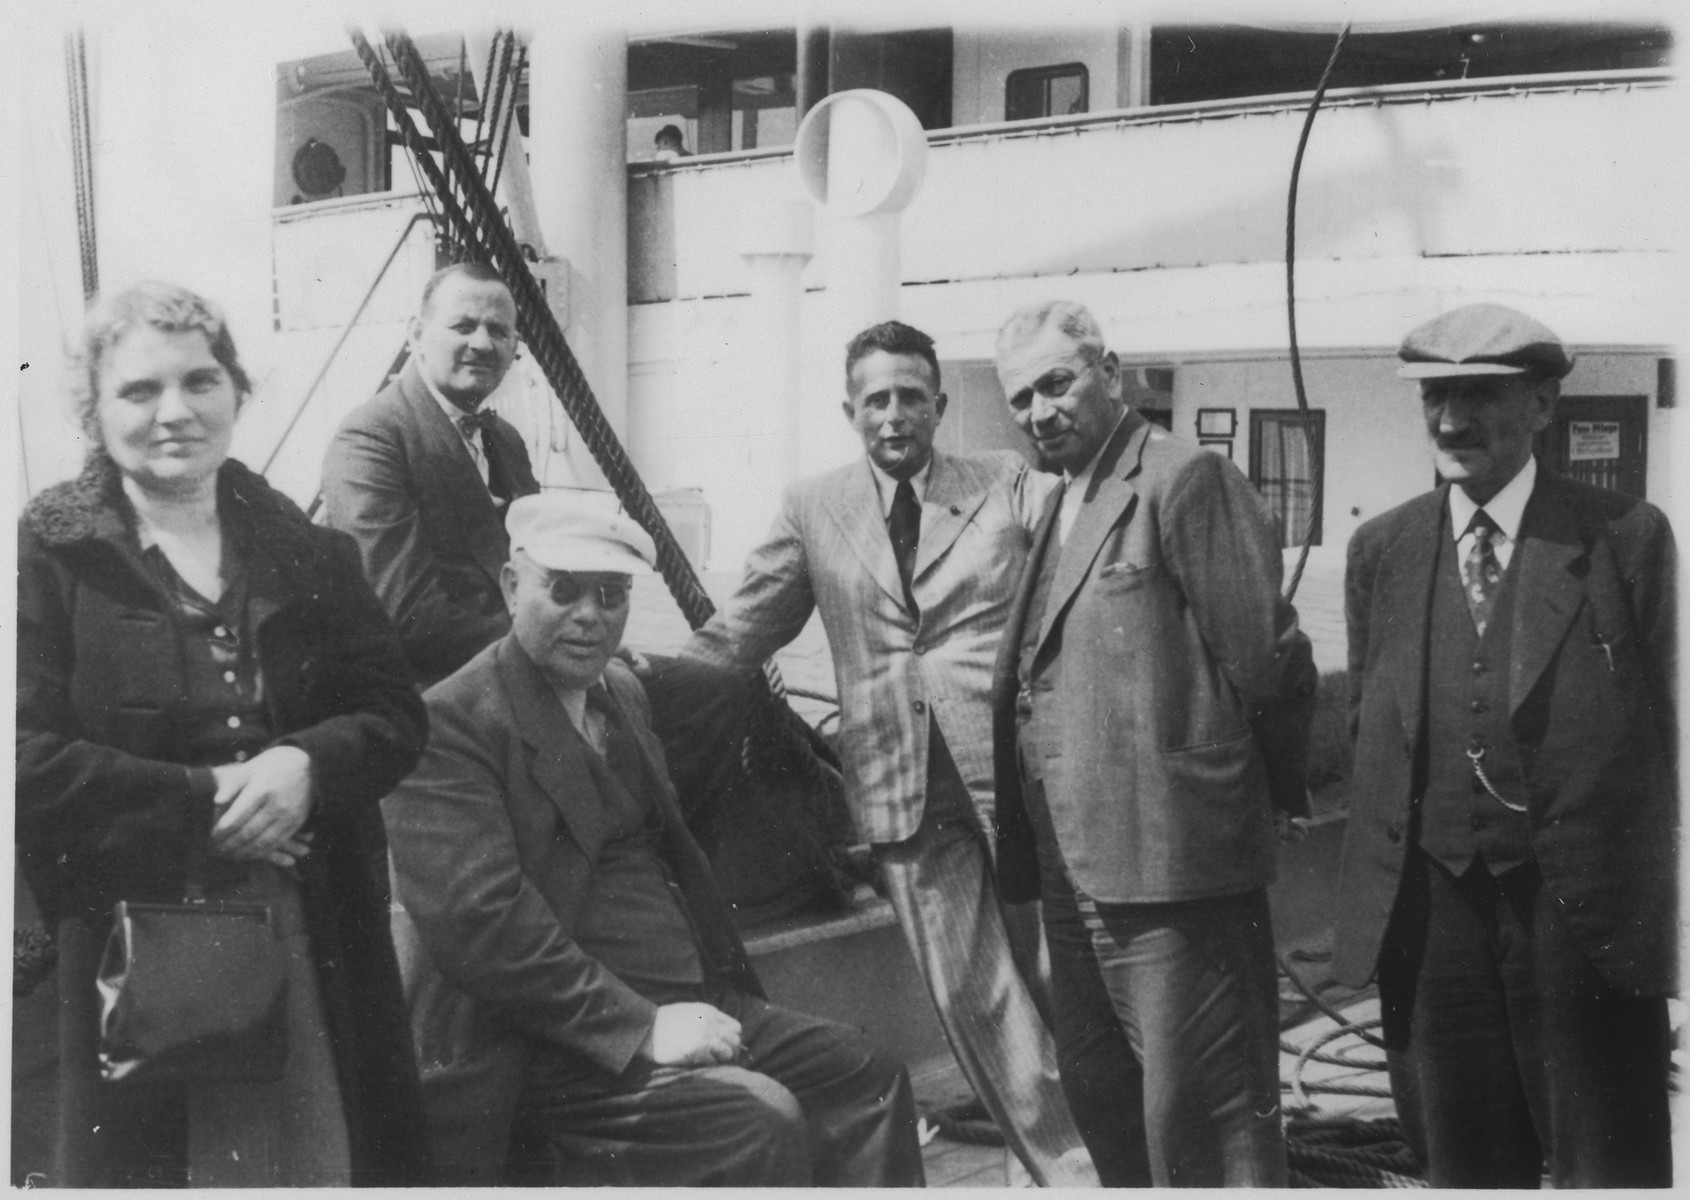 A group of pasengers gathers on the deck of the St. Louis.